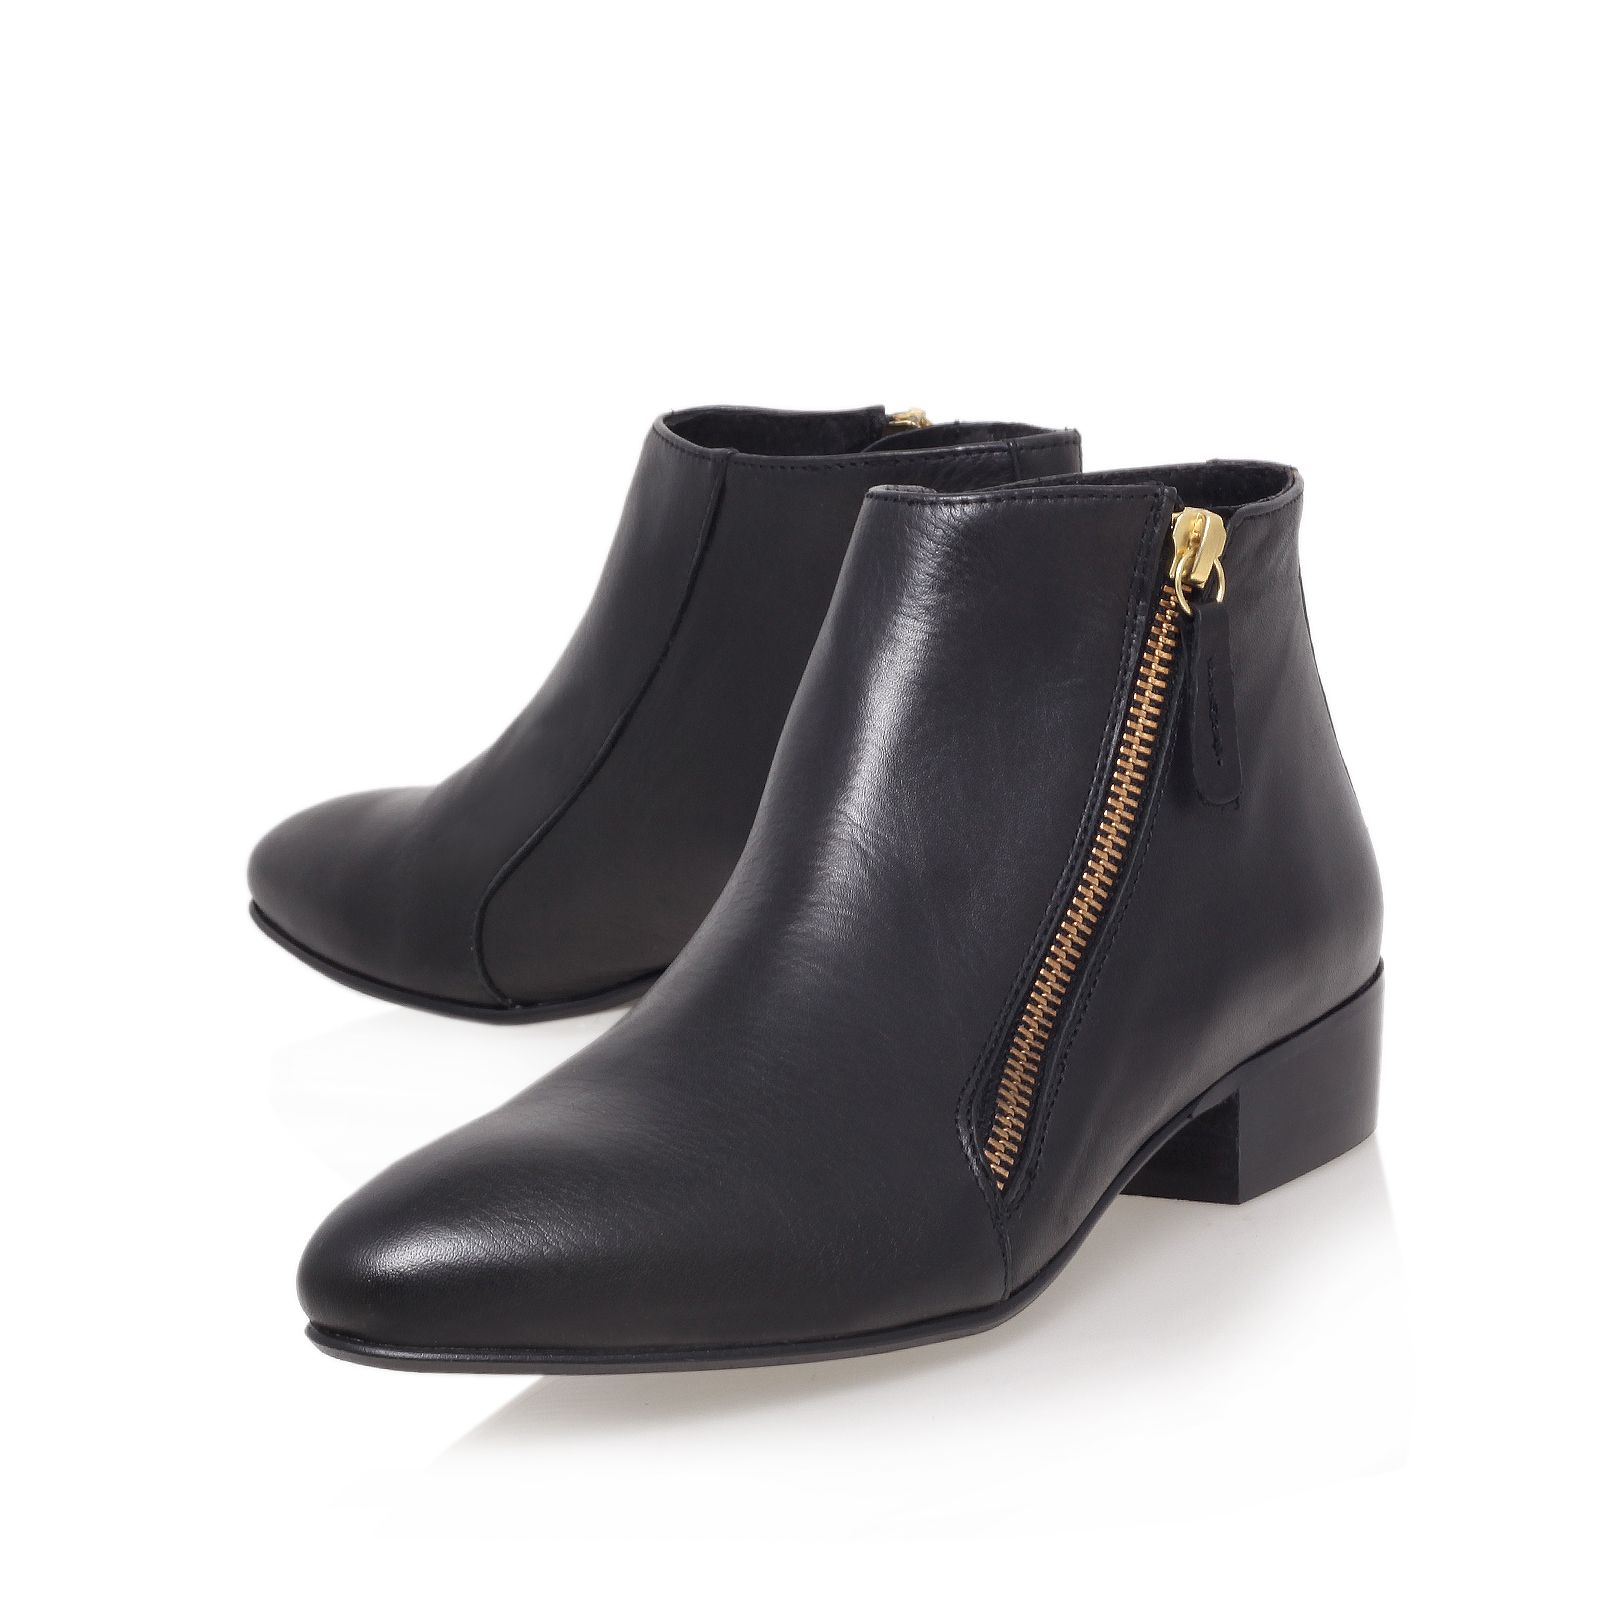 Low Heeled Black Ankle Boots